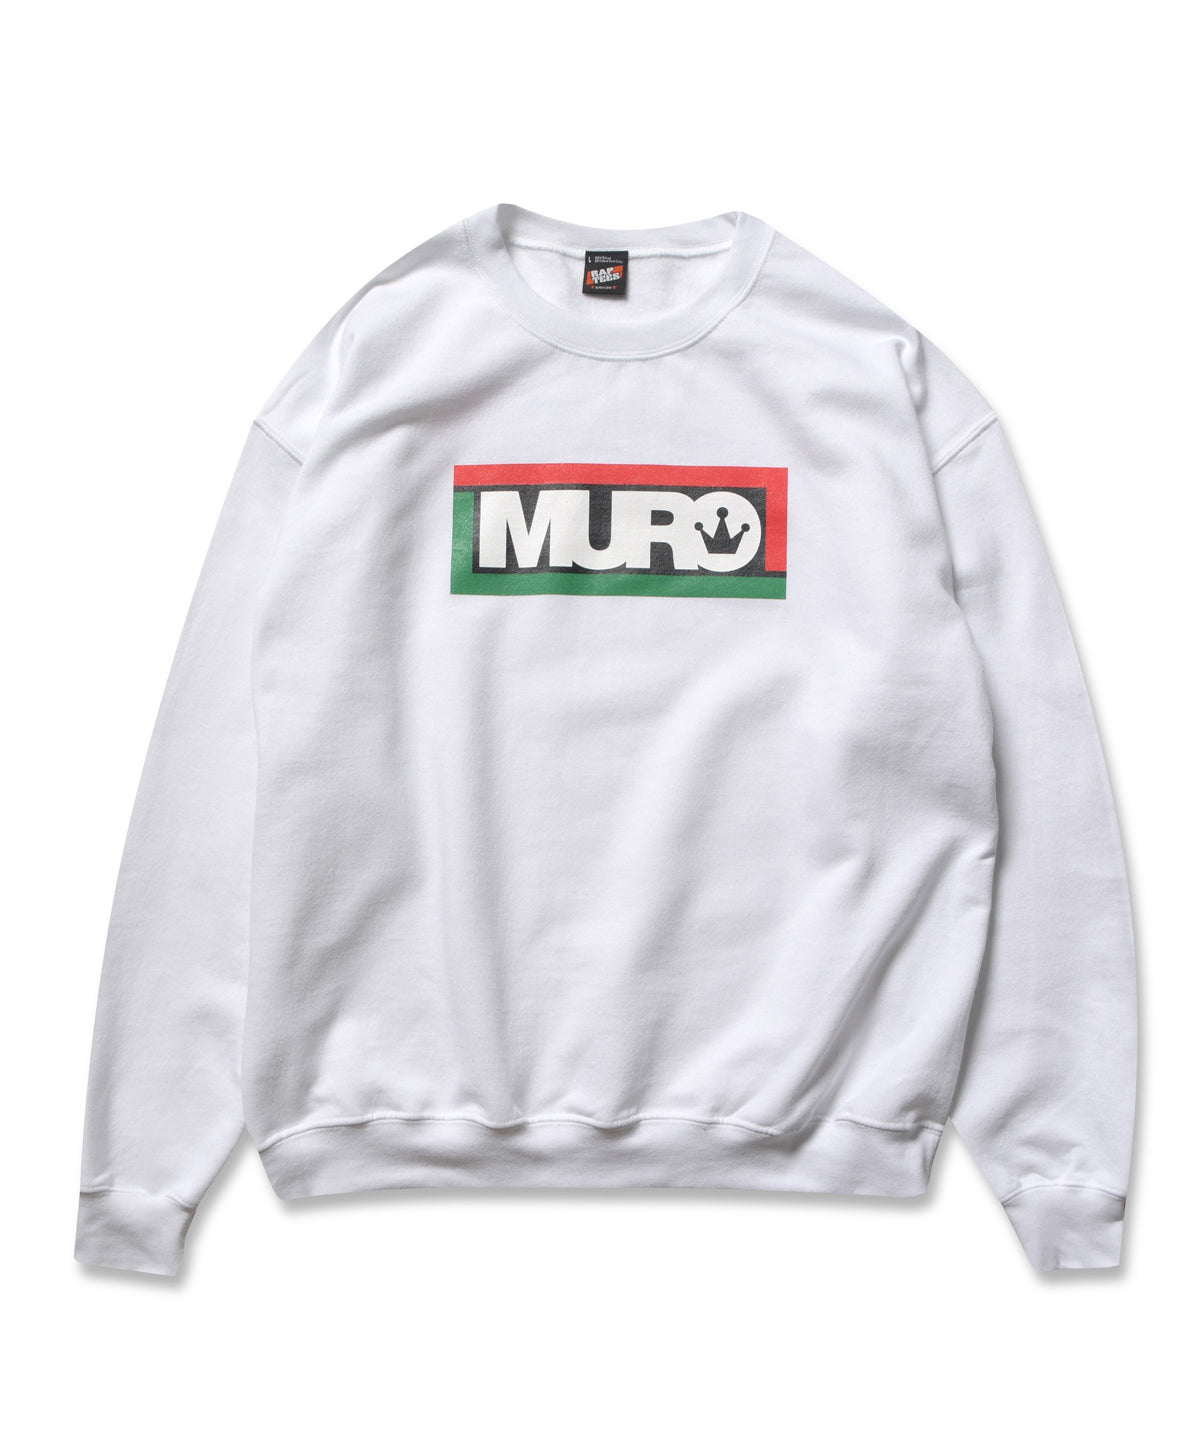 RAP TEES x DJ MURO for KIYONAGA&CO. CREWNECK SWEAT